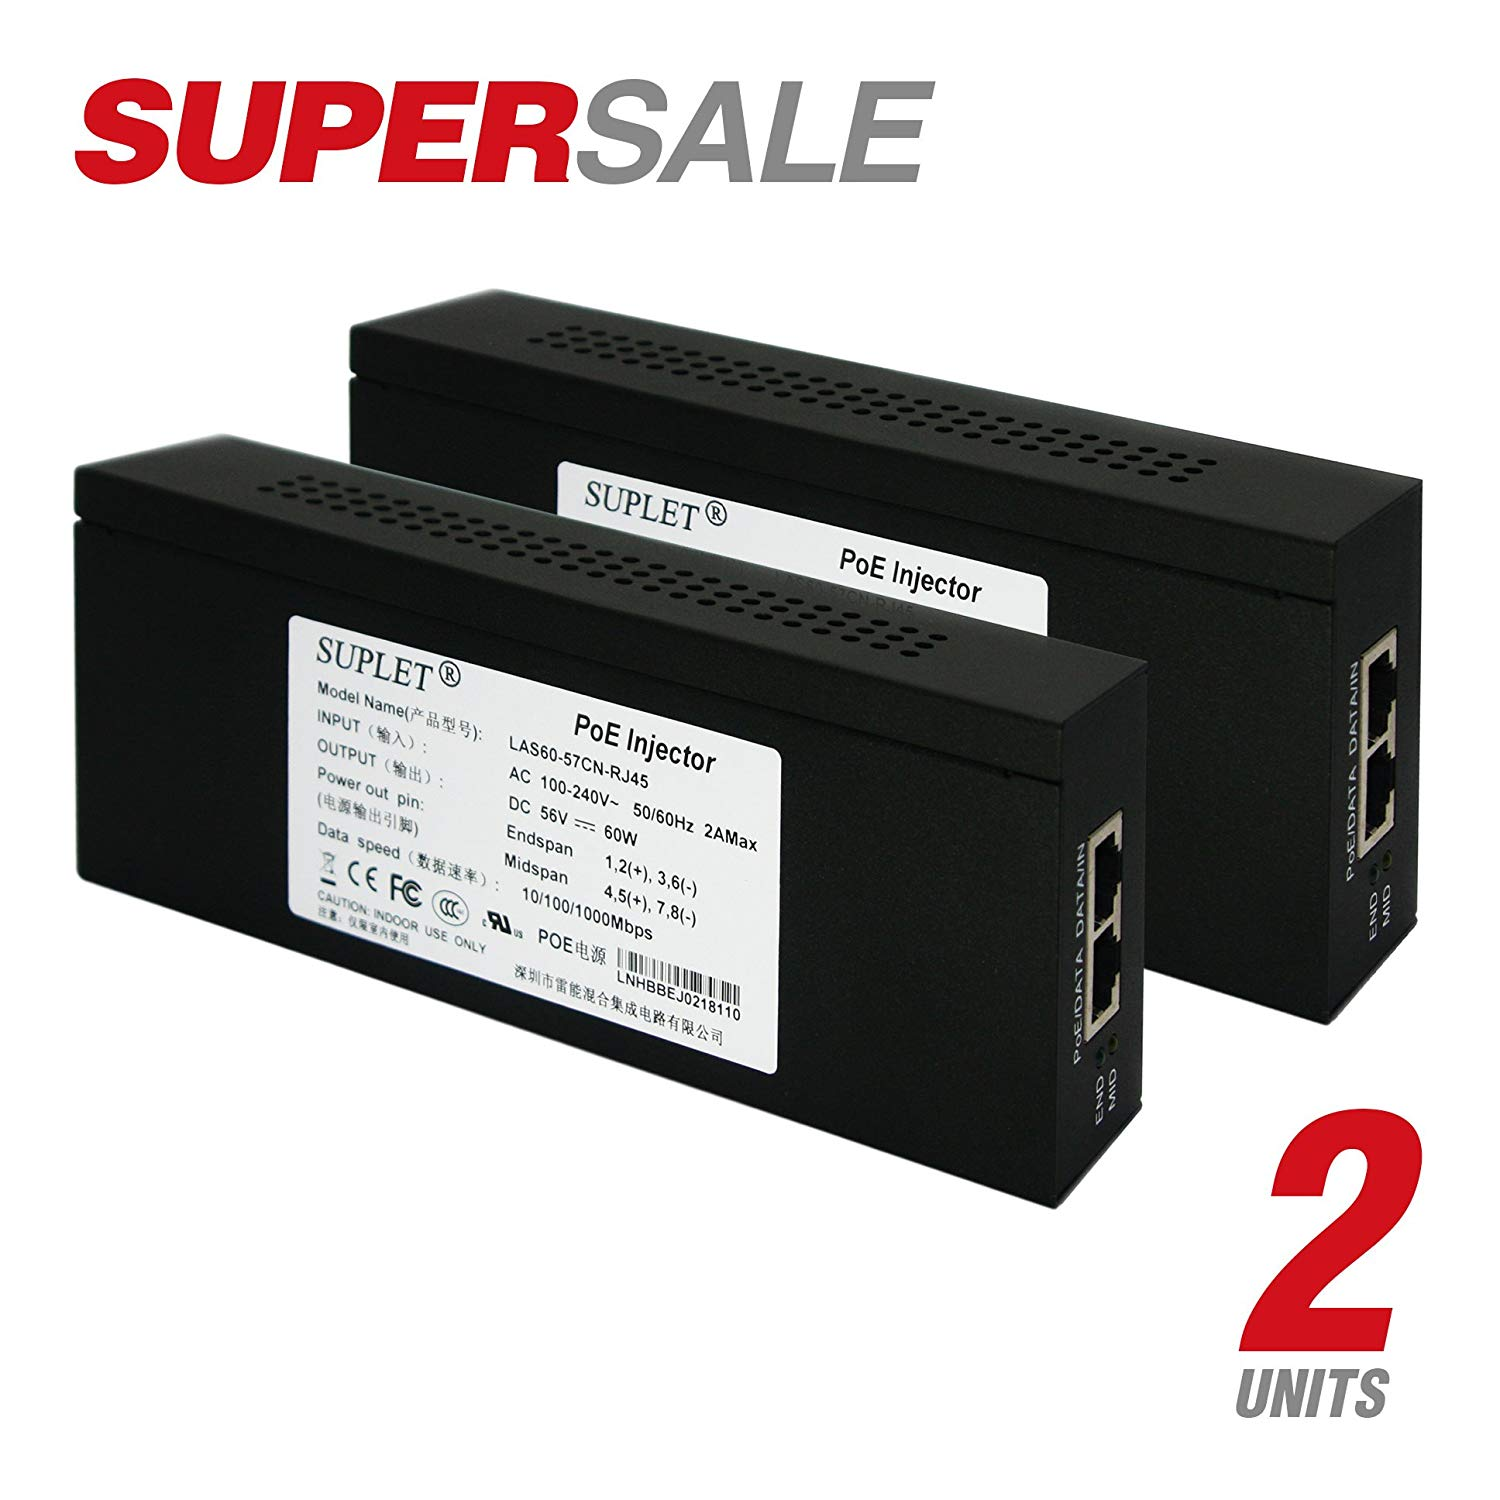 Cheap Current Supply Circuit Find Deals On Powersupplycircuit Batterycharger Solarbatterychargingcircuit Get Quotations Bundle Combo 2 Hikvision Single Port Poe Midspan Power Up To 60w Output